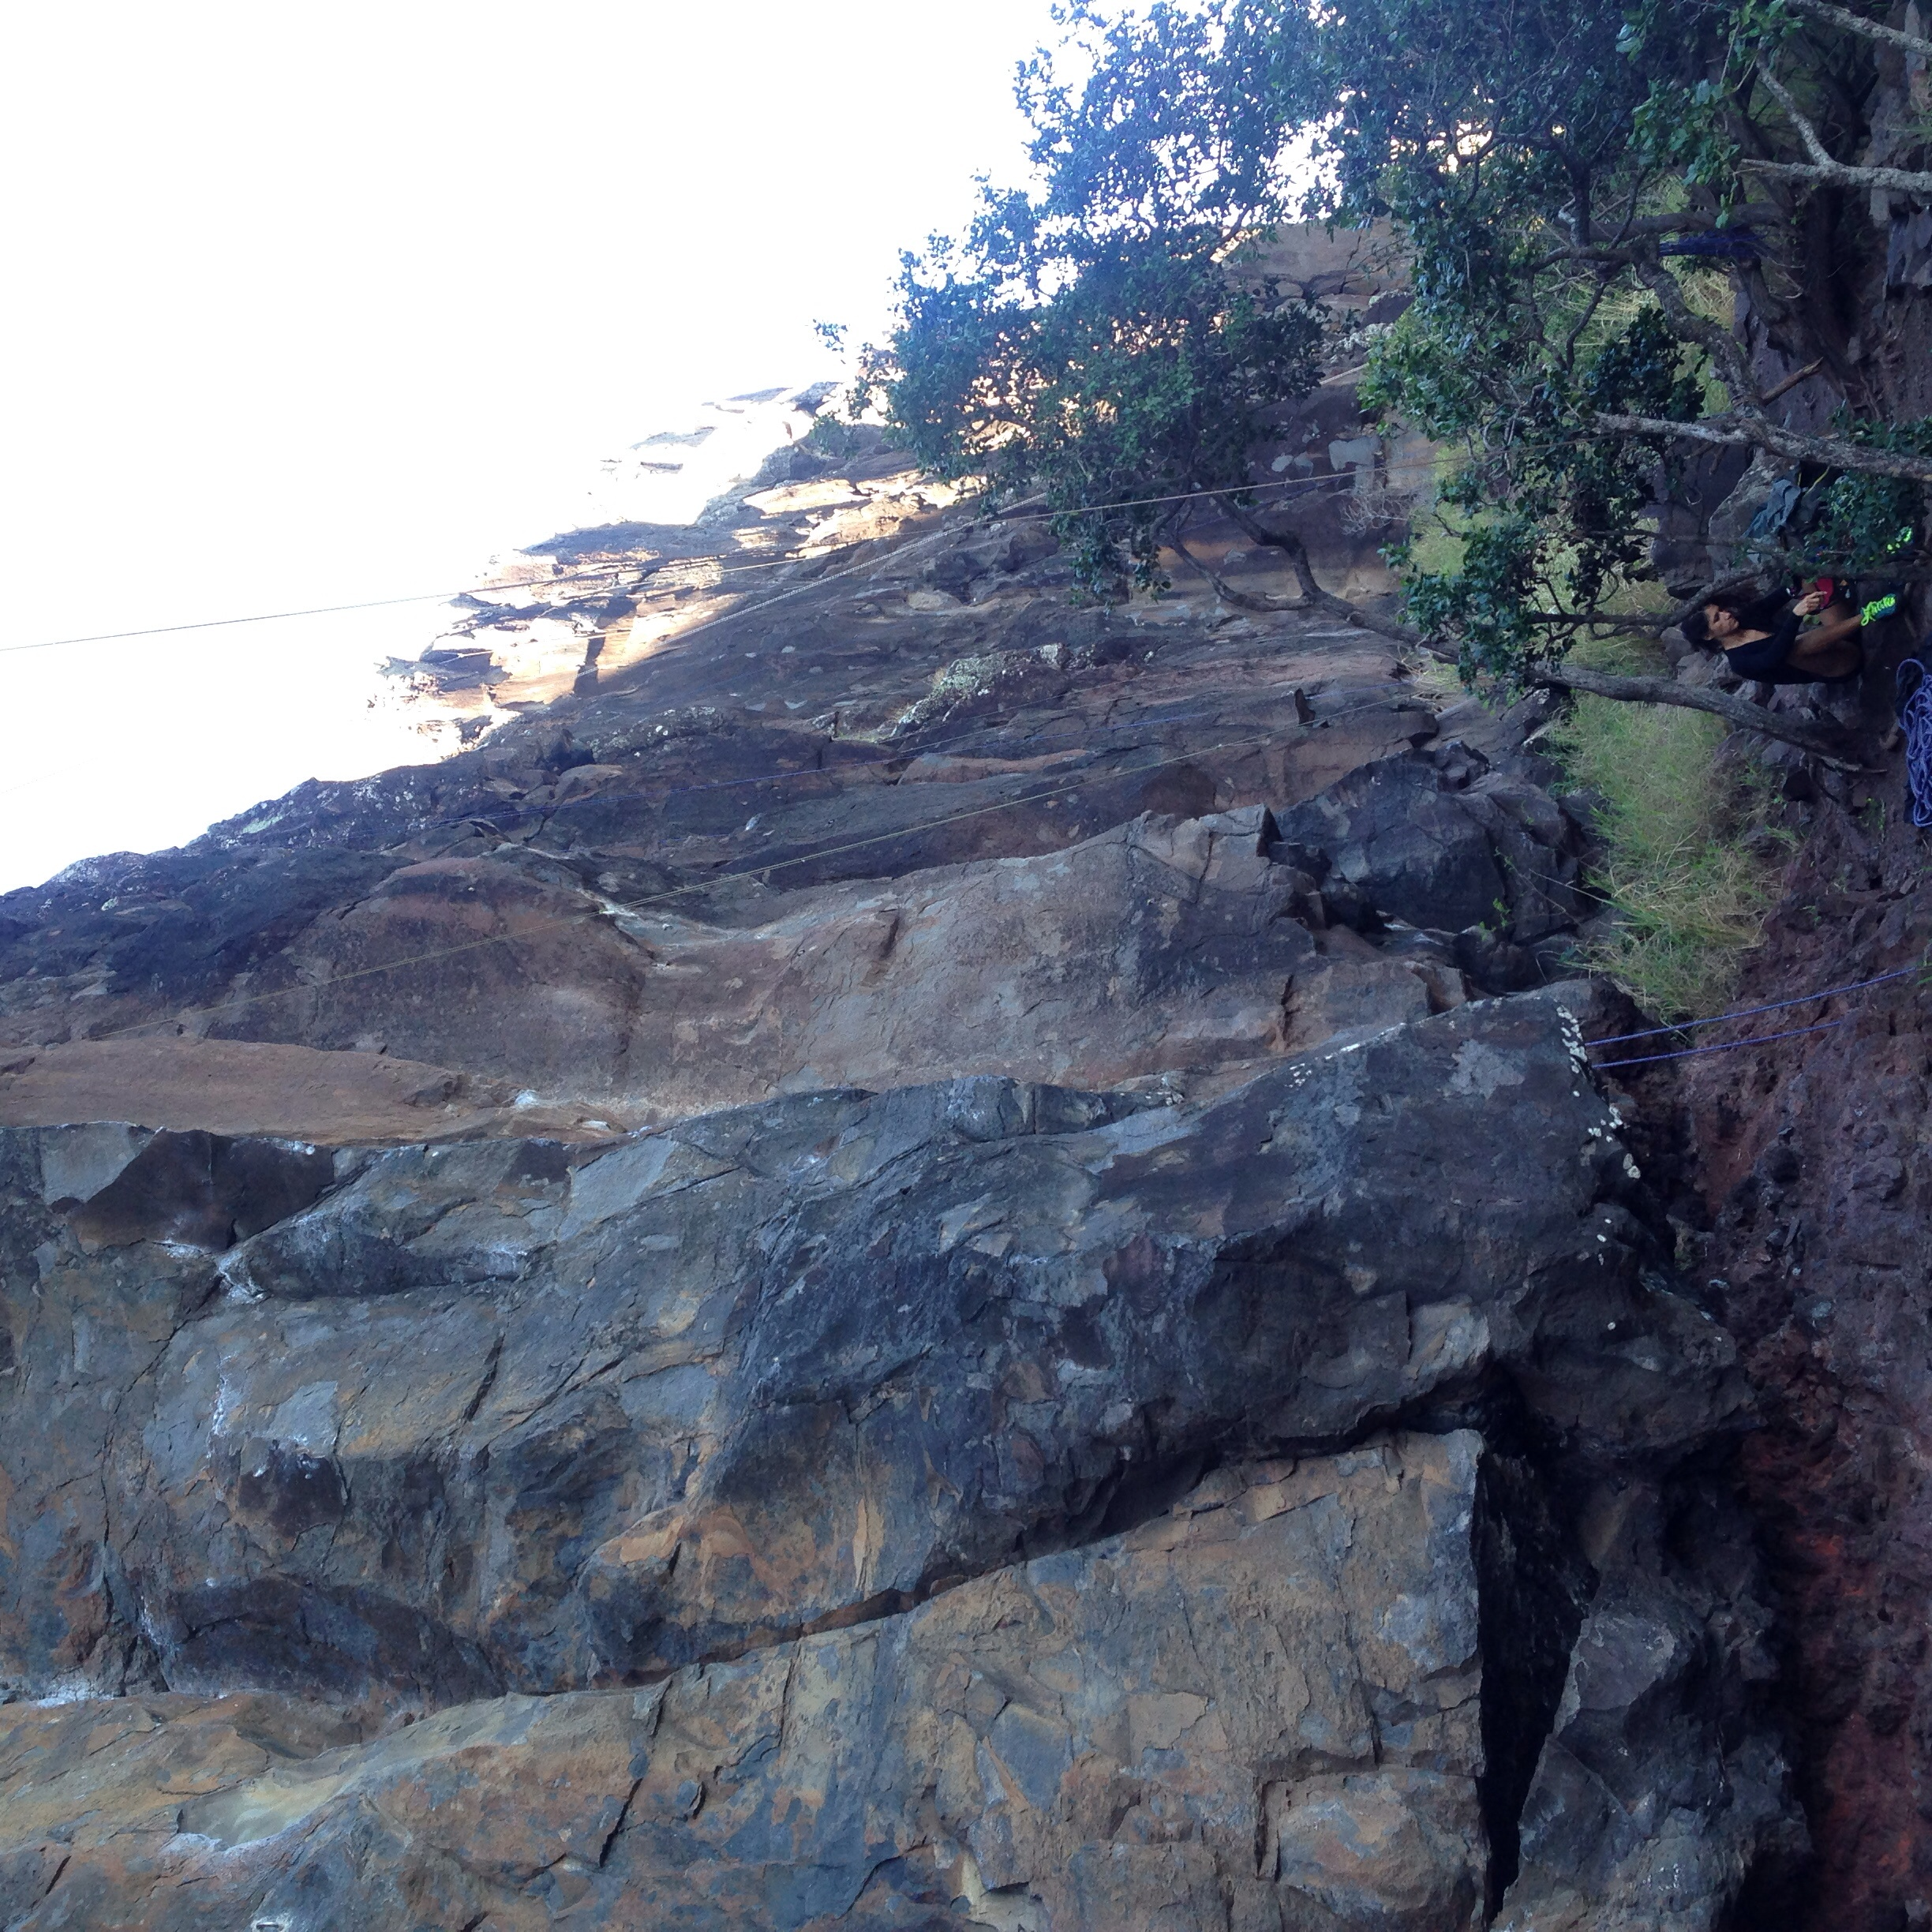 Climbed that!